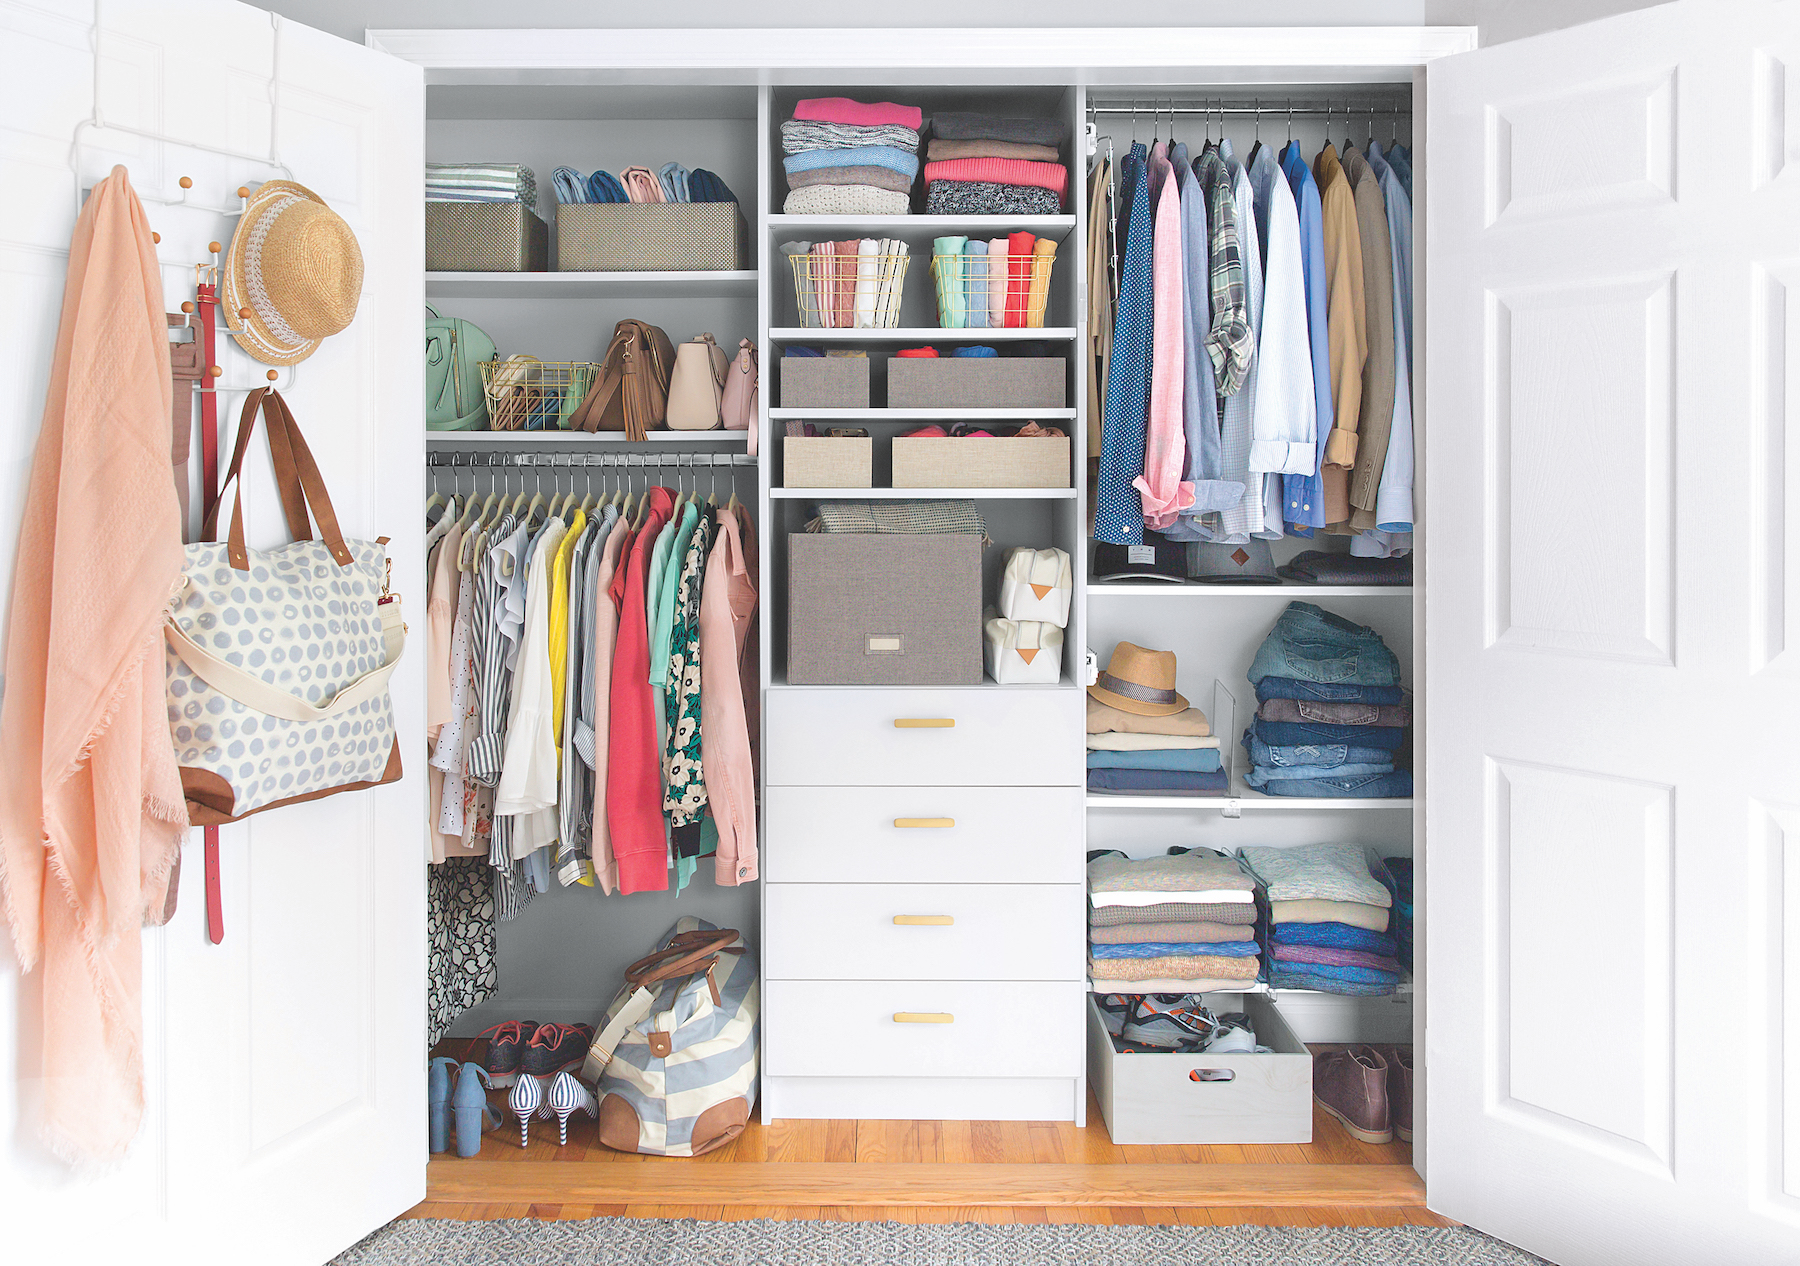 Genius Closet Organizing Tips To Maximize Every Single Inch Of E Real Simple